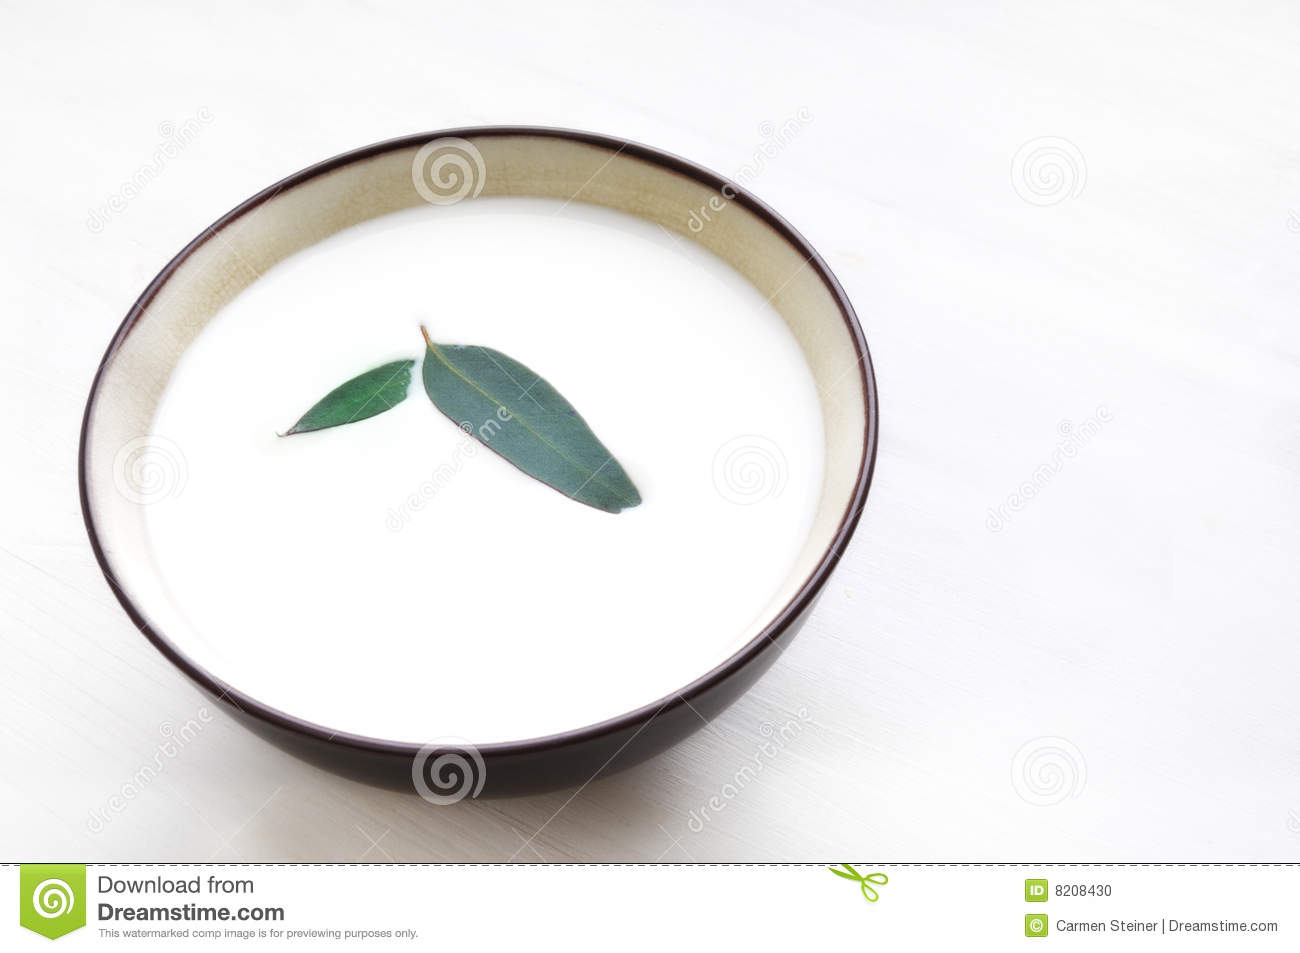 View Of A Bowl Of Milk And A Green Leaf Floating In It As A Garnish